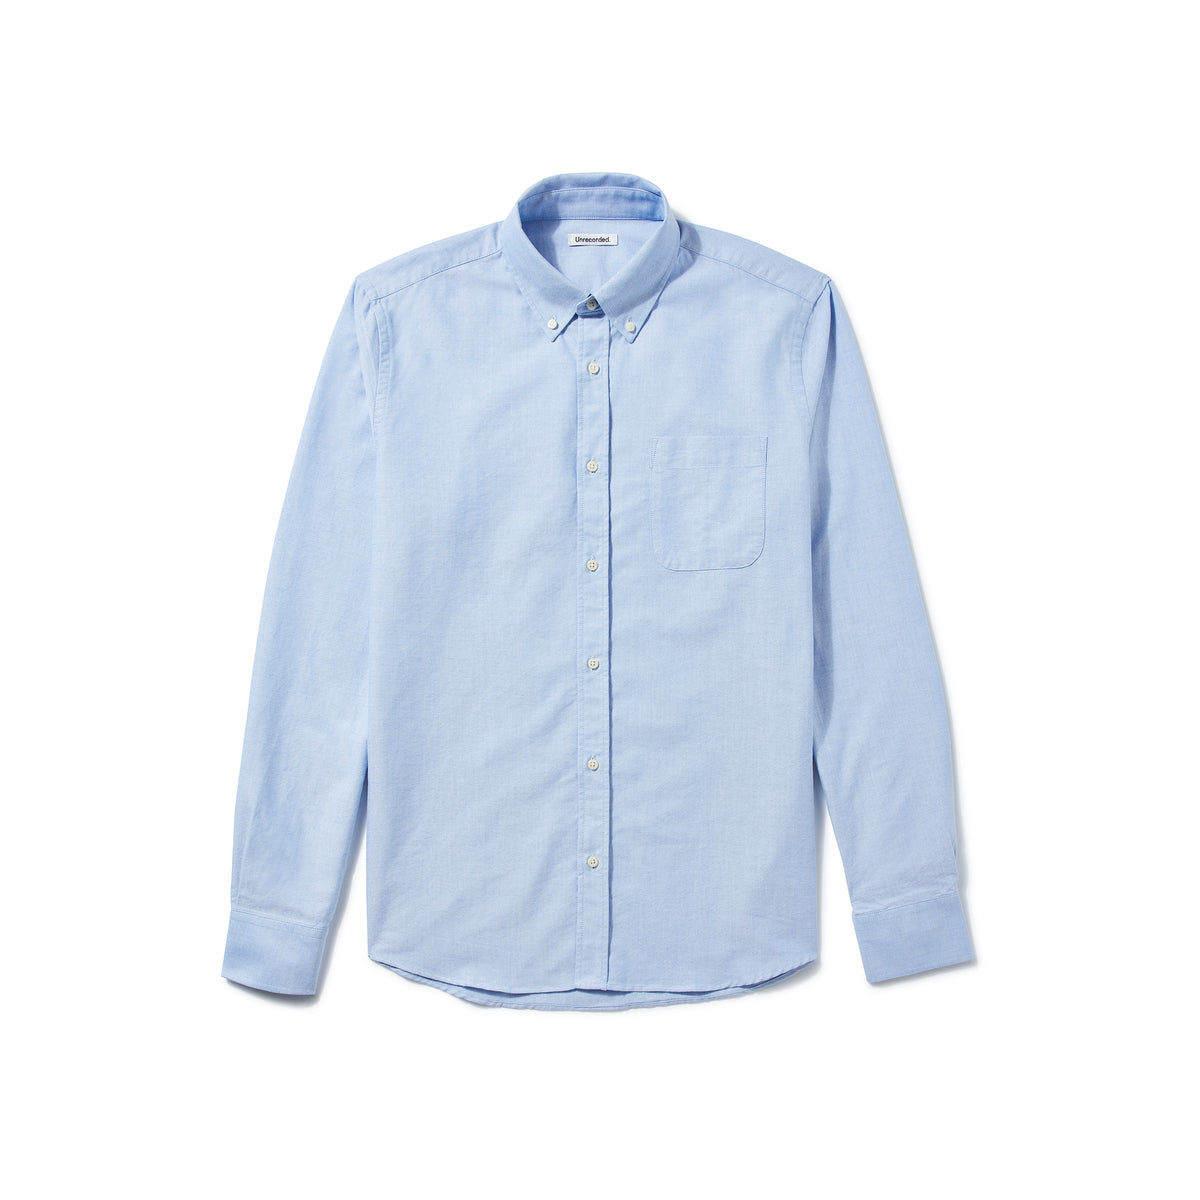 Oxford Shirt Light Blue - Unrecorded